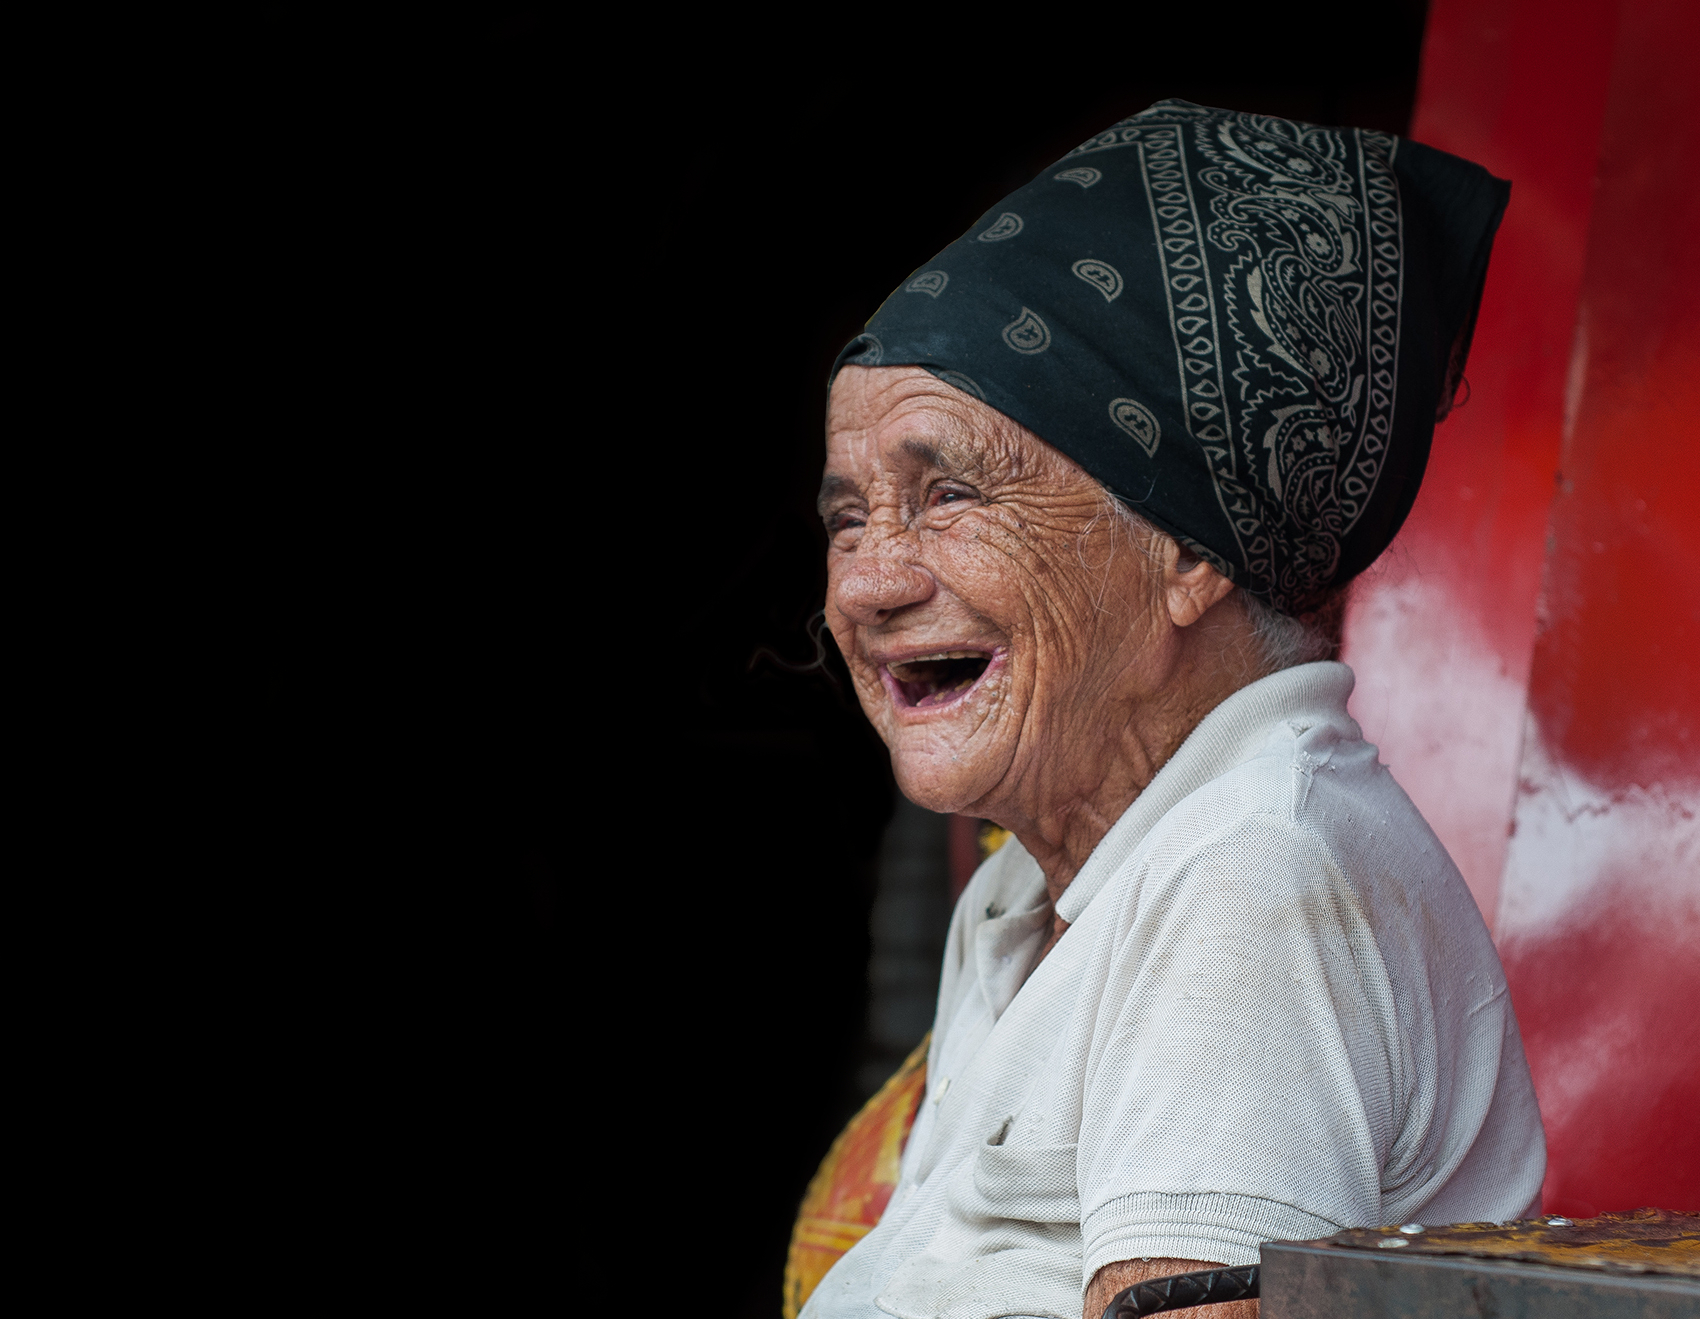 https://commons.wikimedia.org/wiki/File:Old_Woman_Laughing_on_the_Market.jpg